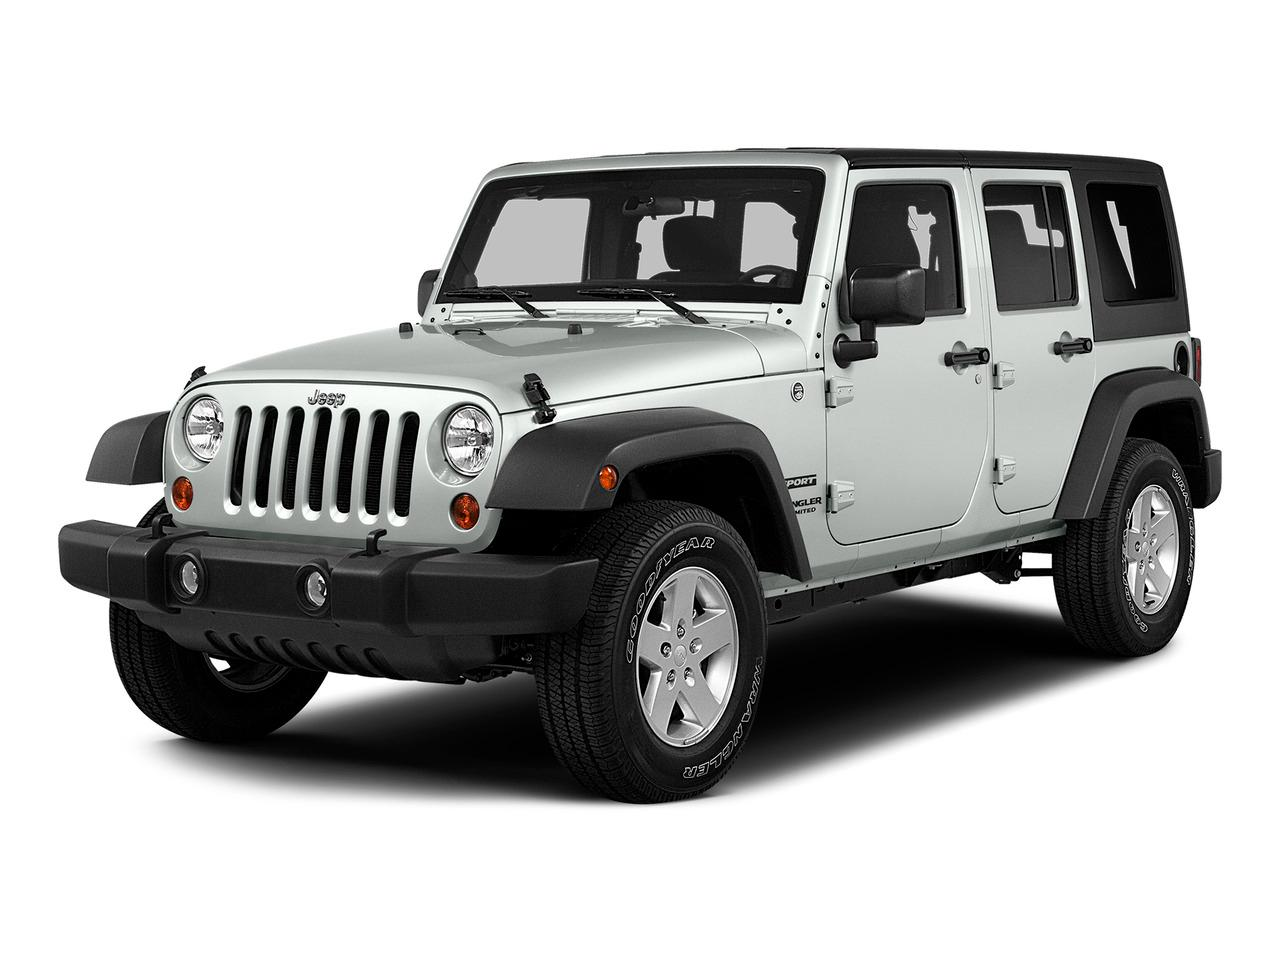 2015 Jeep Wrangler Unlimited Vehicle Photo in Plainfield, IL 60586